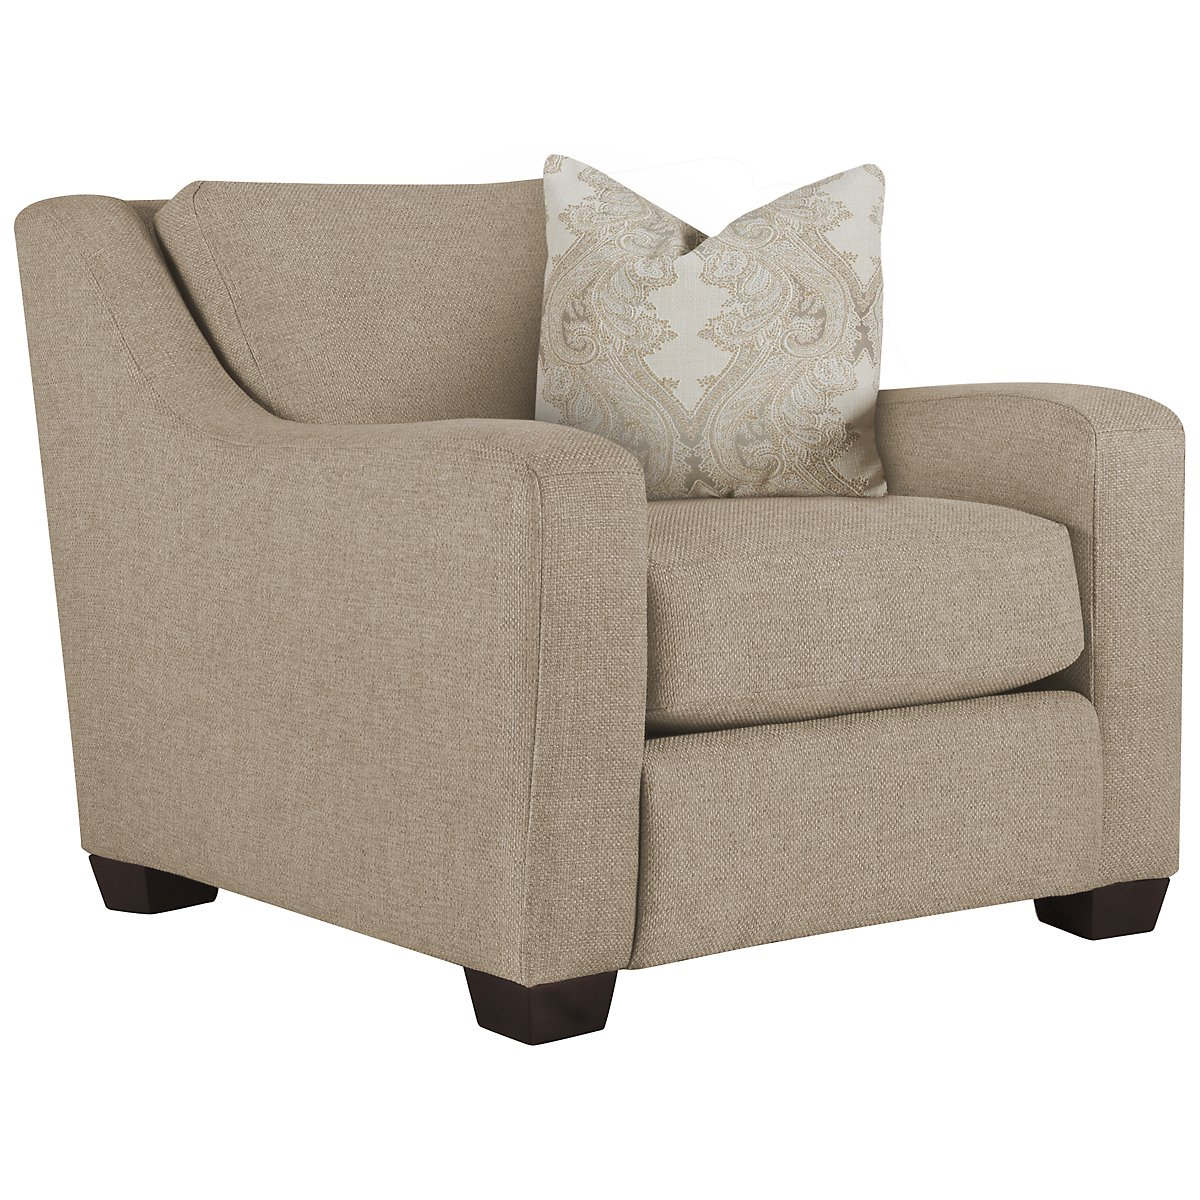 Lorna3 Beige Fabric Small Chair